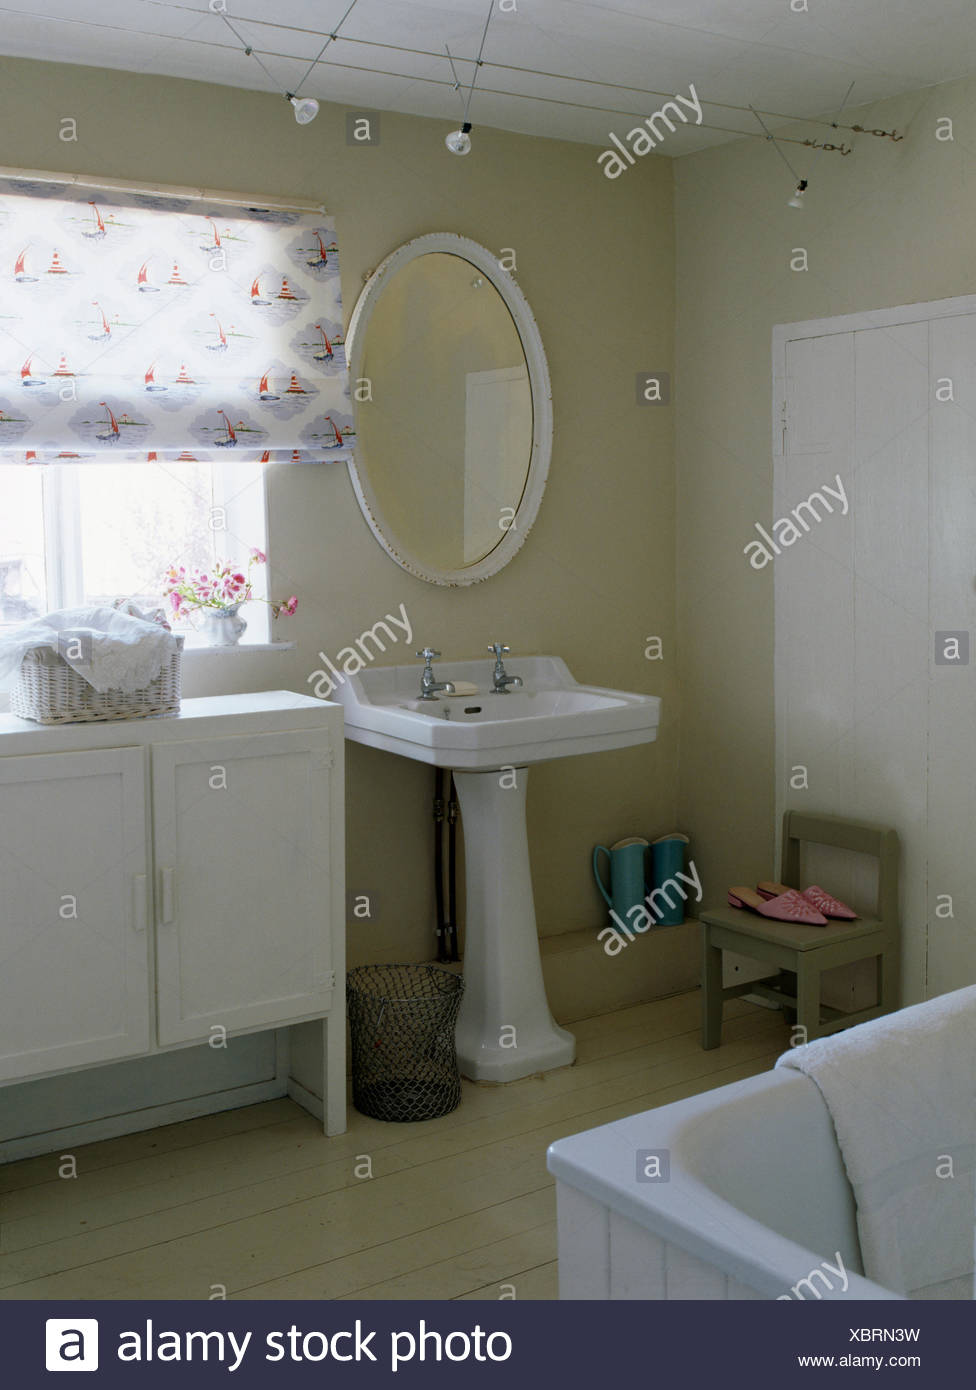 Oval Mirror Above White Pedestal Basin In Country Bathroom With Patterned White Blind On Window Above Painted Cupboard Stock Photo Alamy